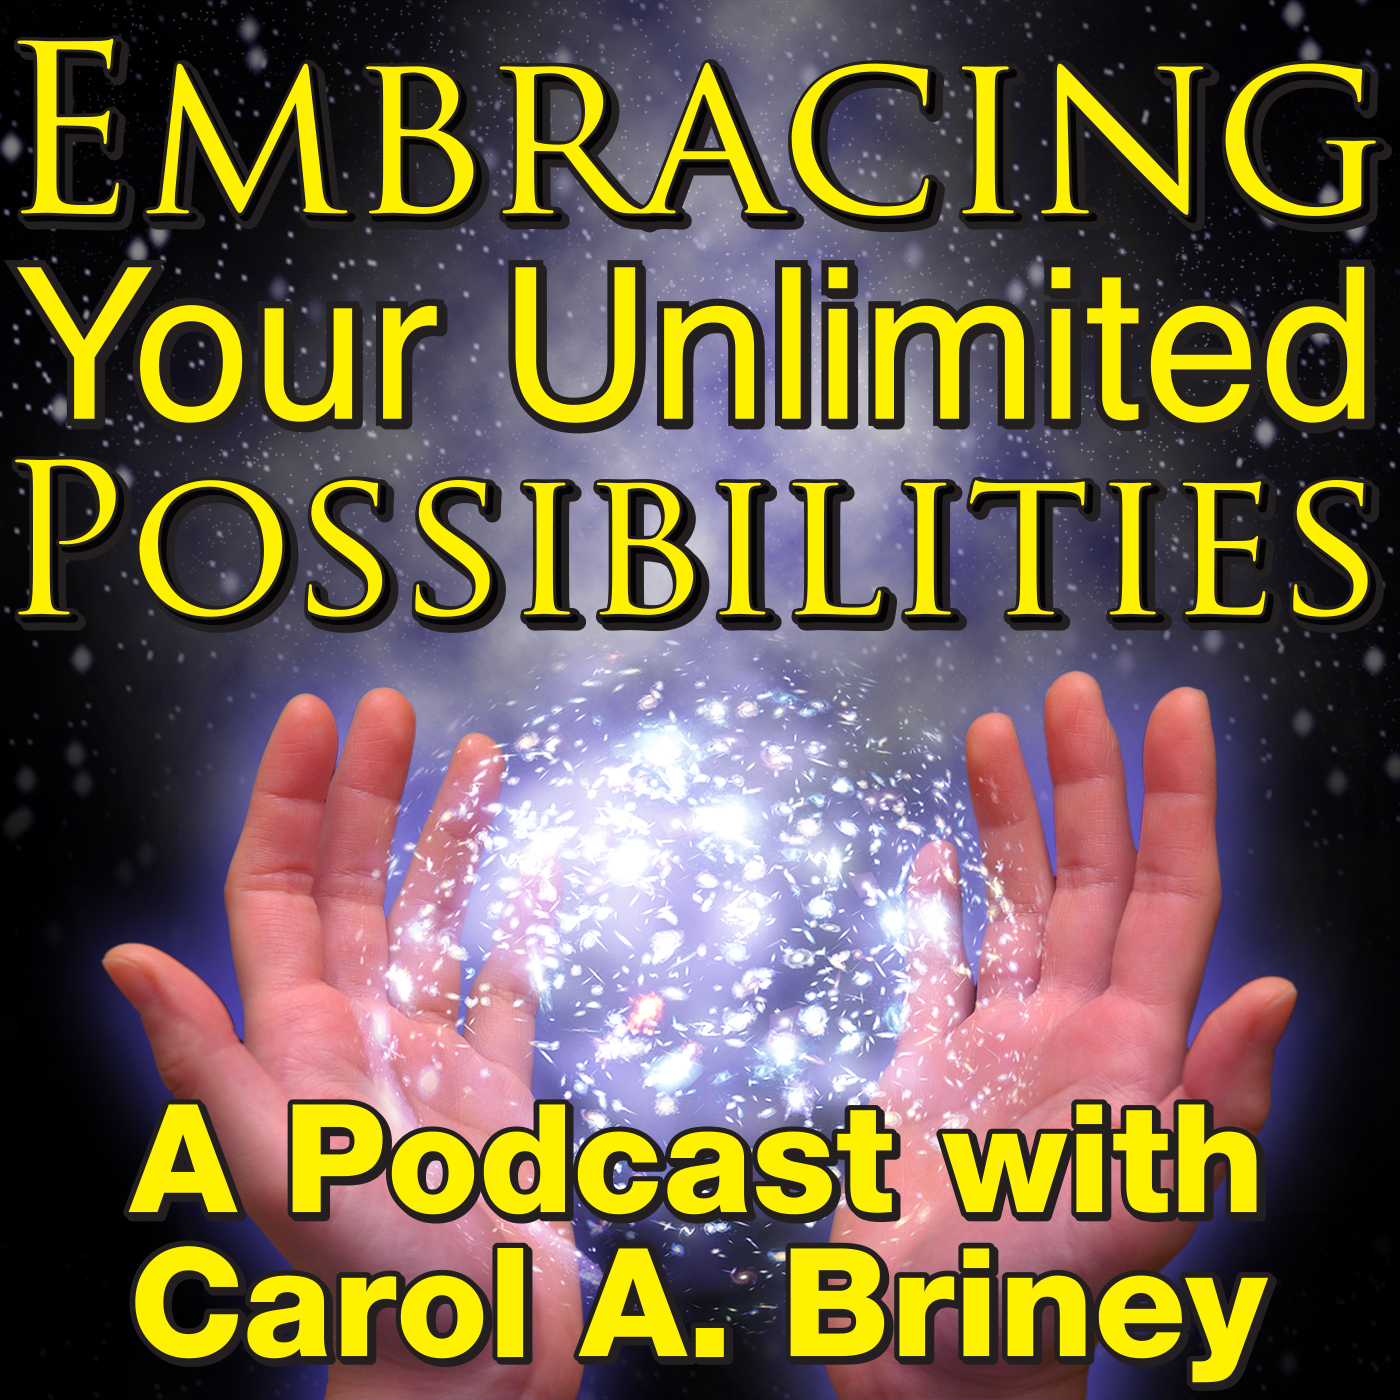 Embracing Your Unlimited Possibilities with Carol A. Briney